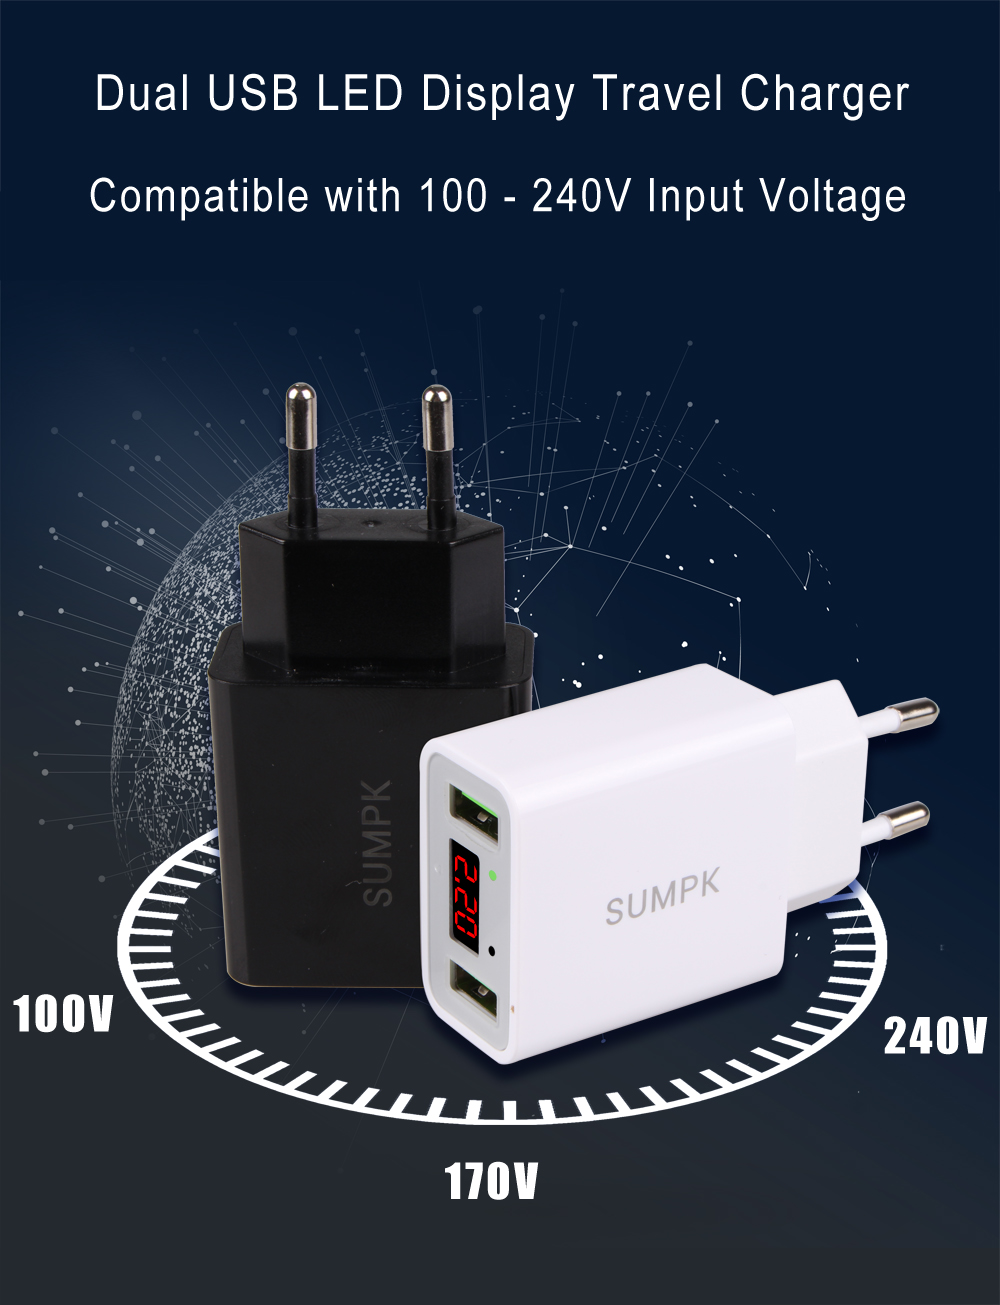 SUMPK Dual USB Travel Charger 5V2.2A LED Display Smart Fast Charging Mobile Wall Charger for iPhone iPad Samsung